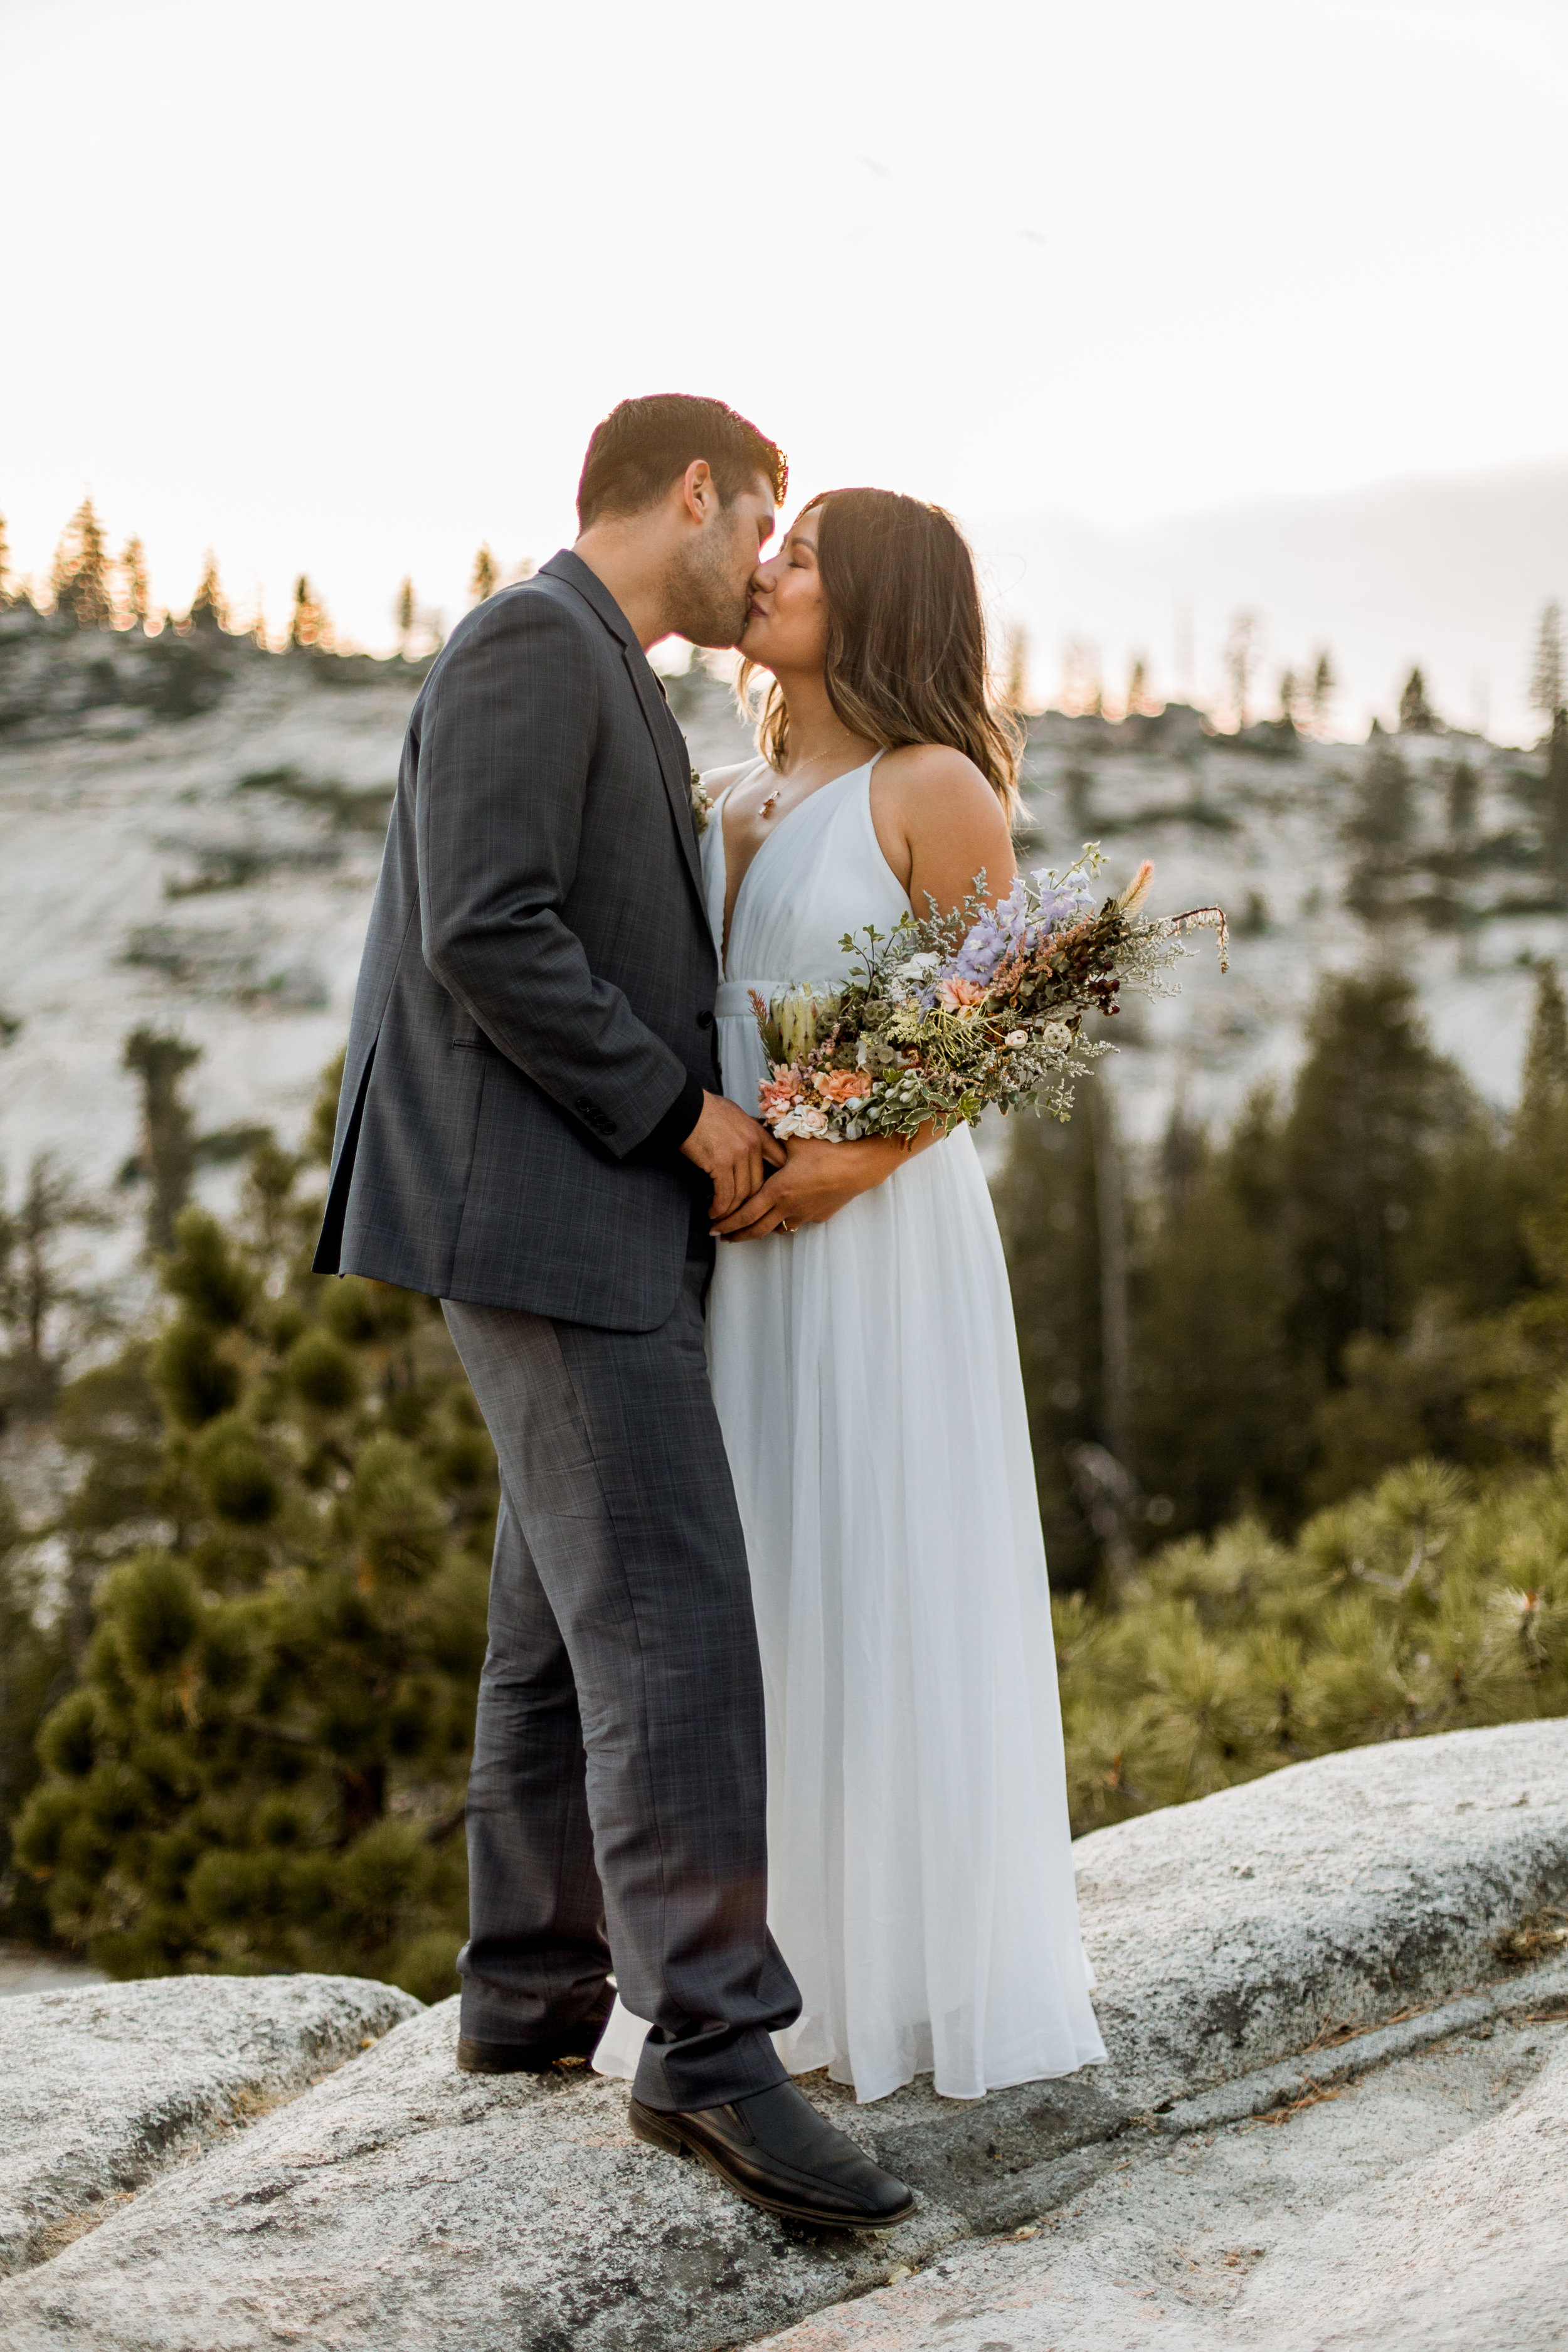 nicole-daacke-photography-yosemite-national-park-fall-elopement-adventurous-free-spirit-boho-bohemian-elopement-olmsted-point-yosemite-california-elope-adventure-elopement-photographer-12.jpg